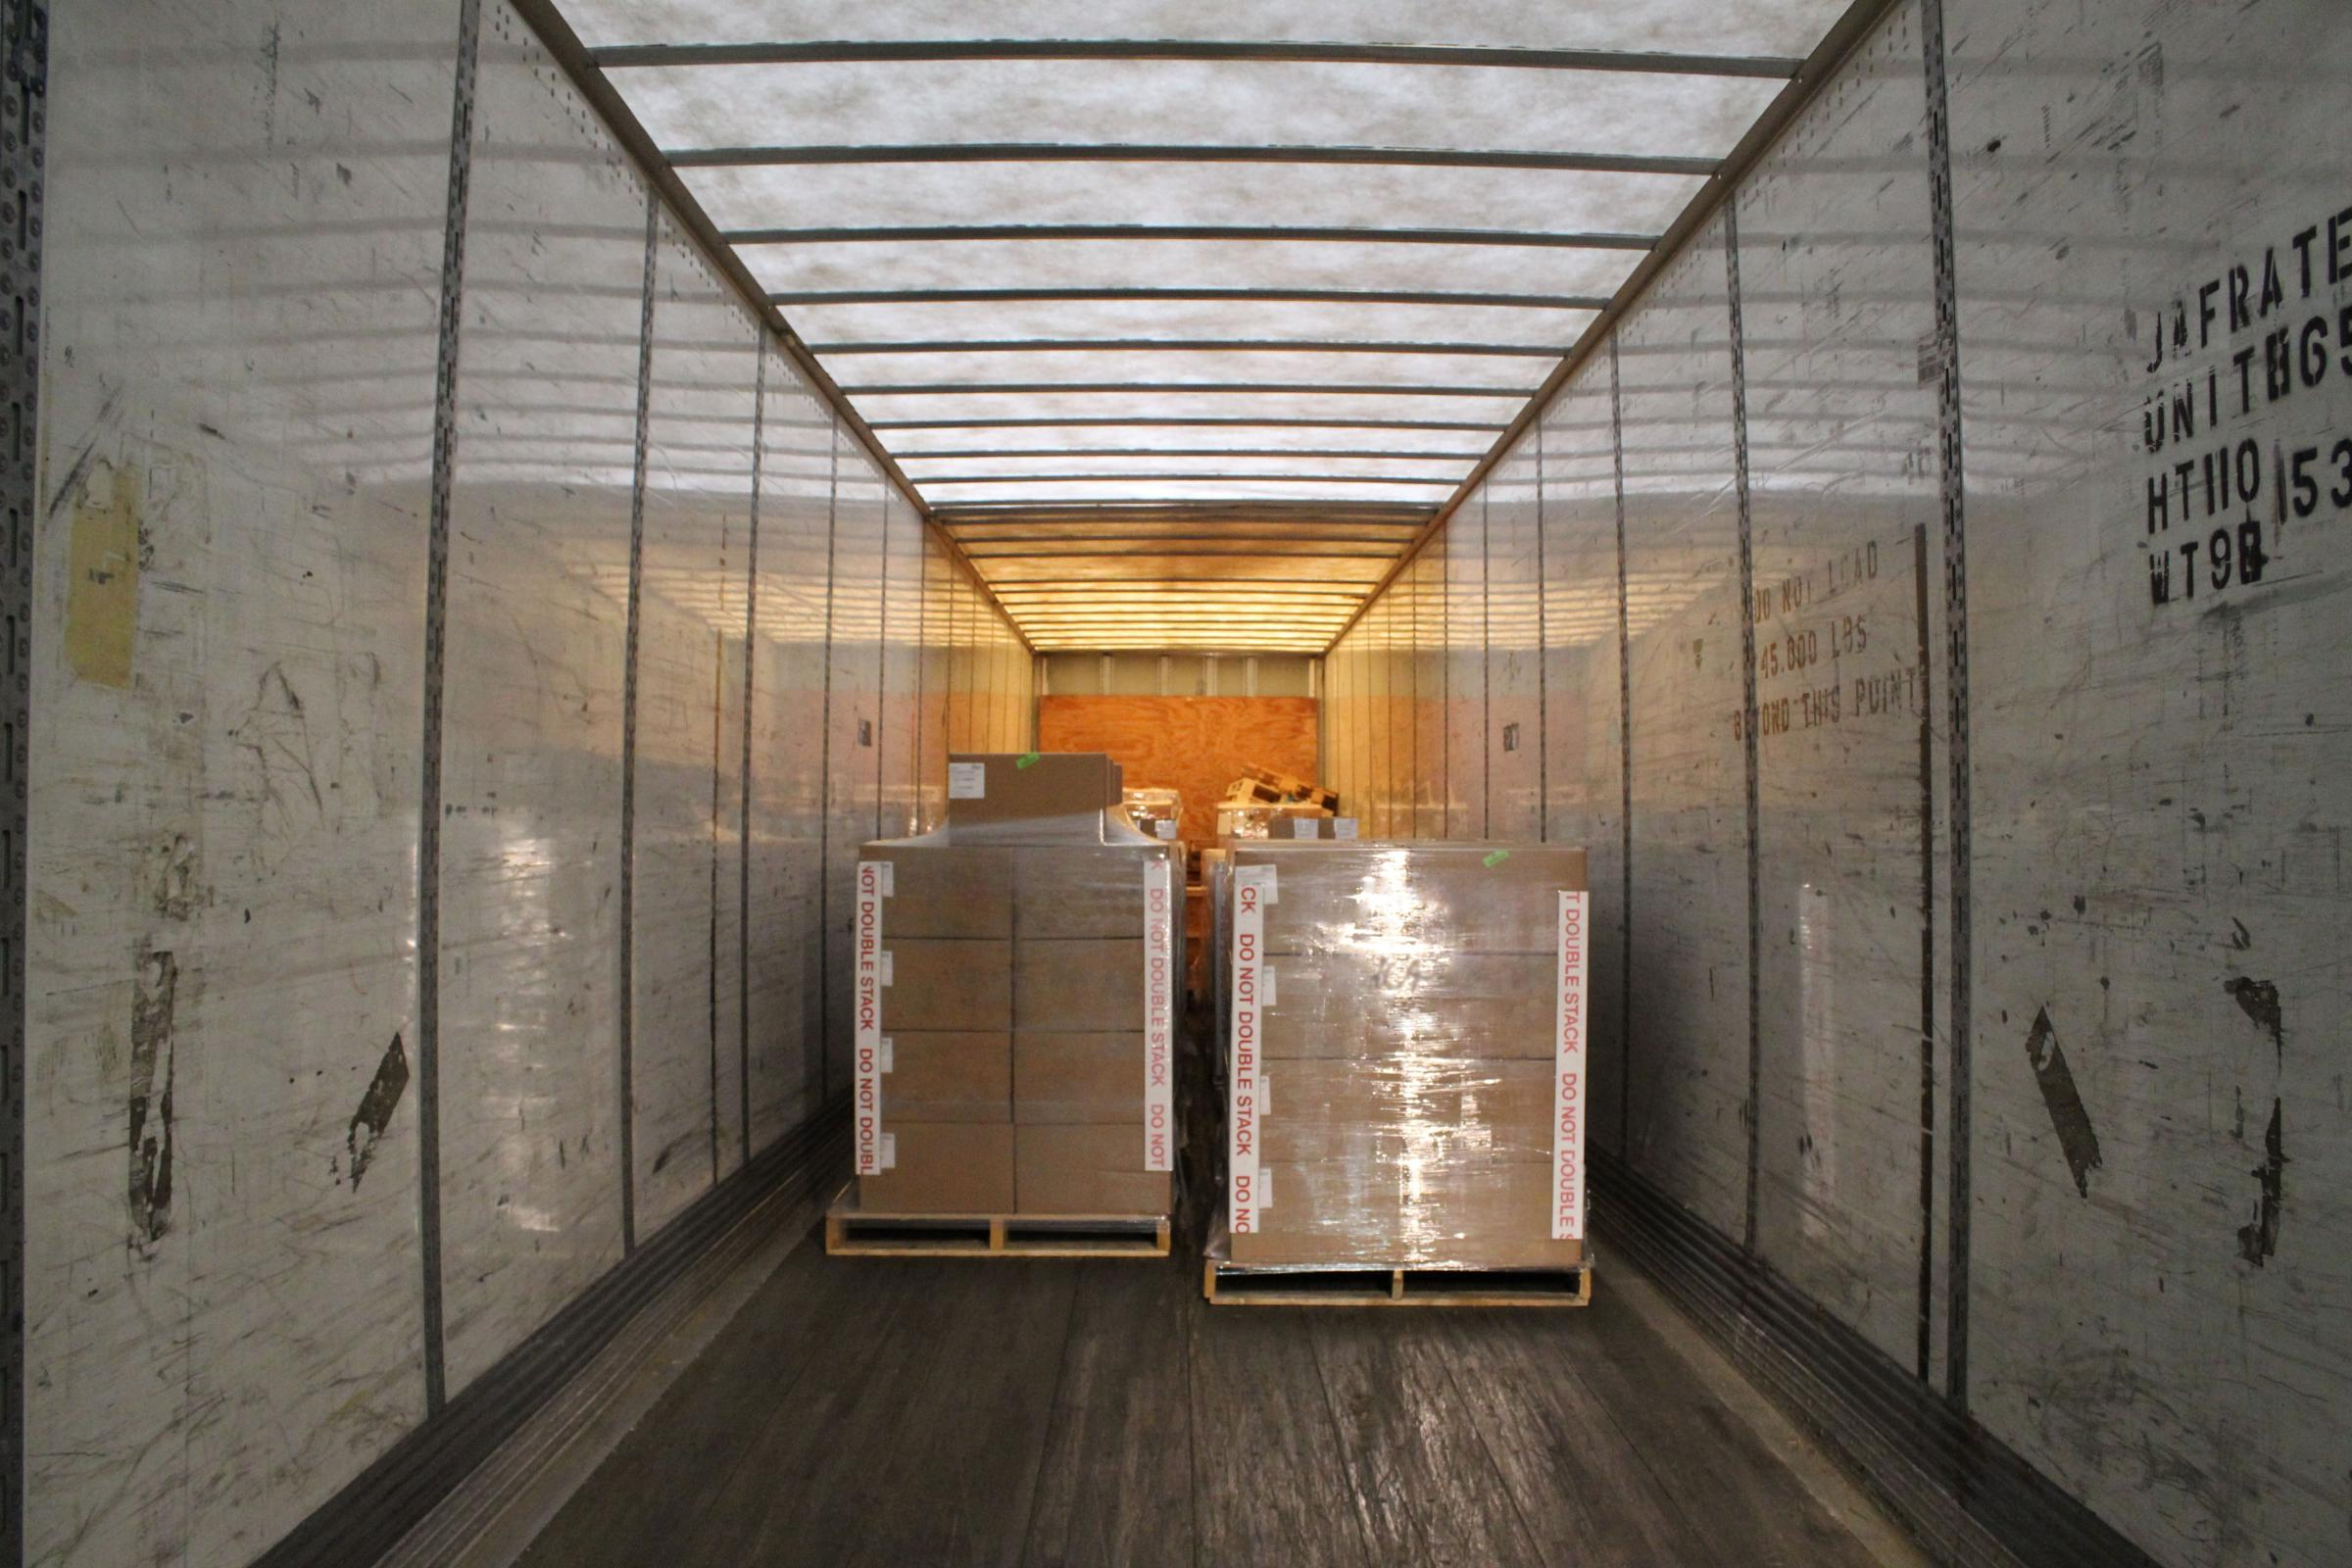 Volume truckload rates for Indiana